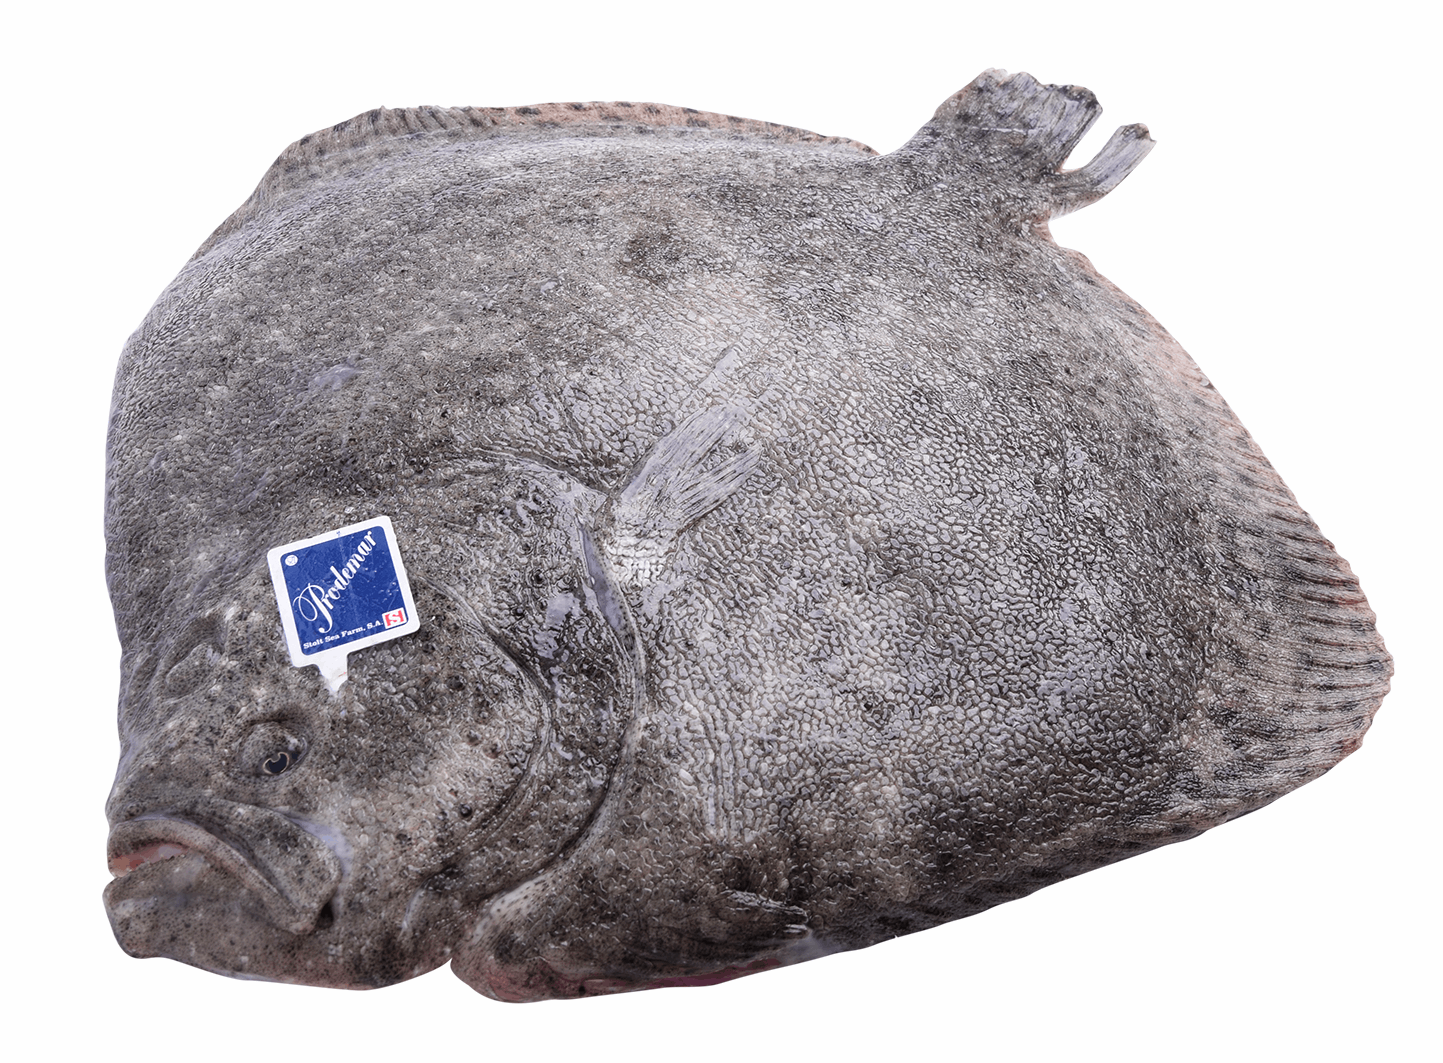 Productafbeelding TURBOT WHOLE FARMED FRESH 2-3 KG